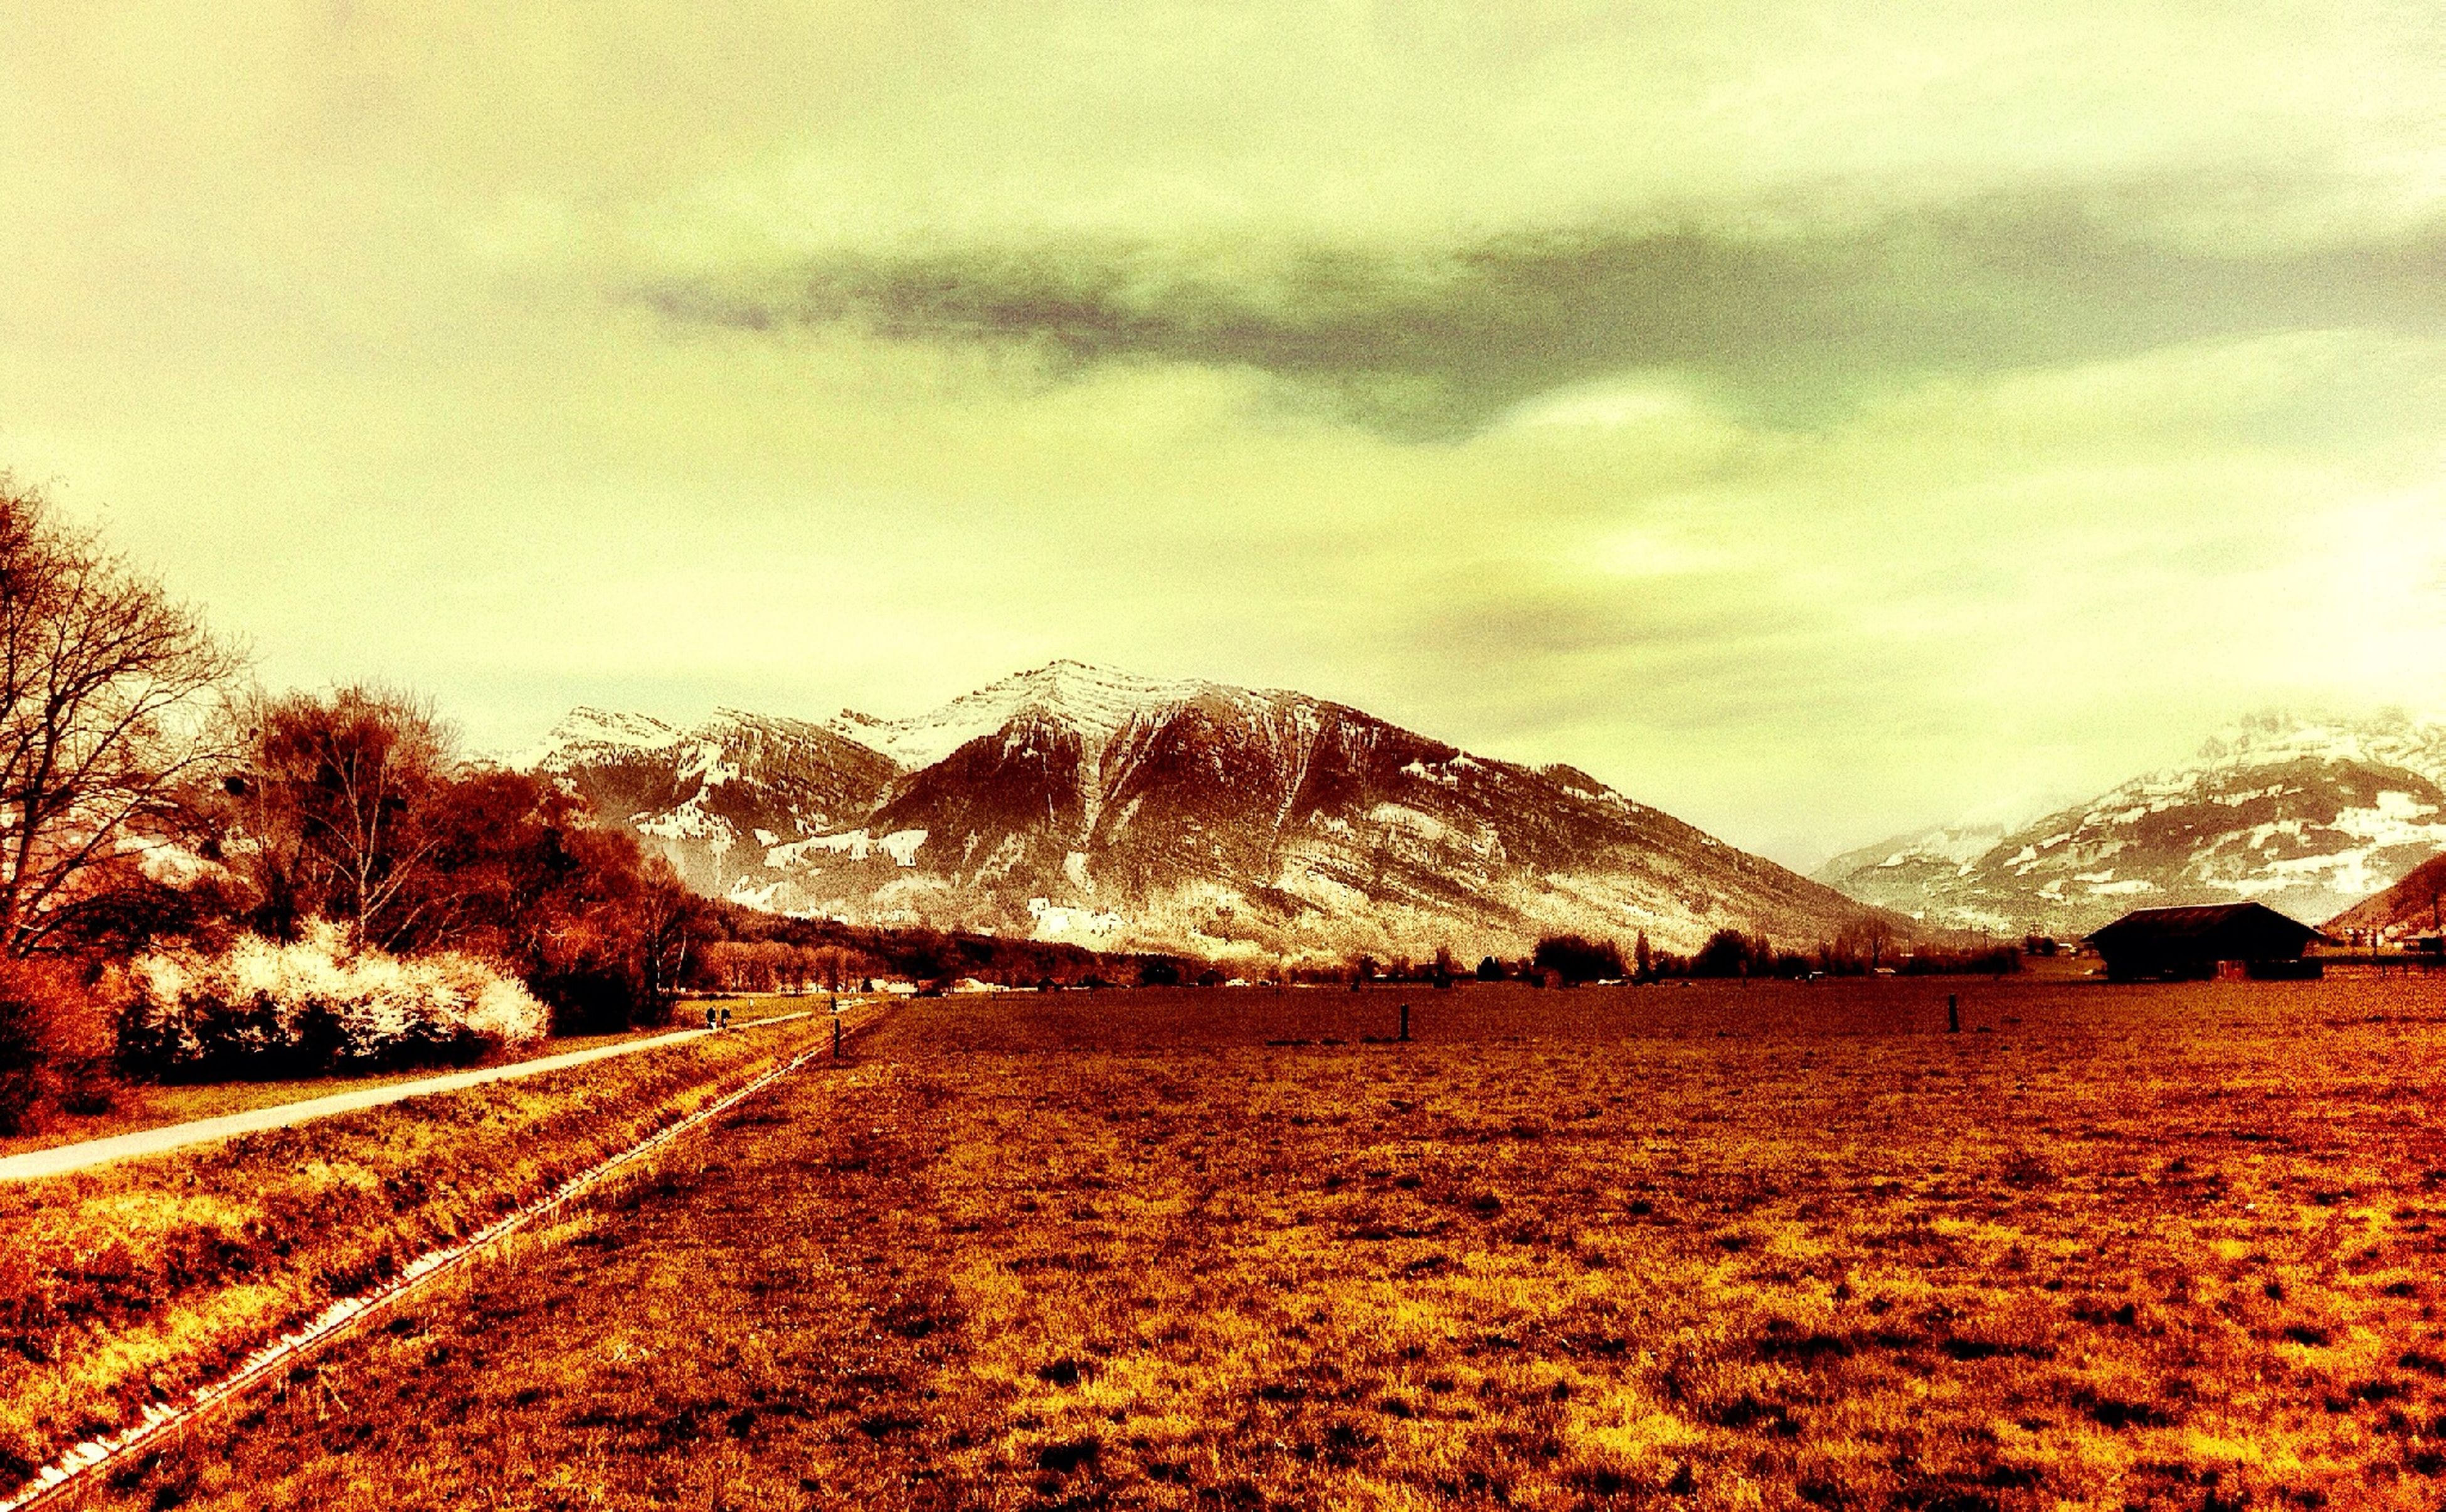 sky, tranquil scene, landscape, tranquility, cloud - sky, mountain, scenics, season, beauty in nature, snow, winter, nature, cold temperature, weather, field, tree, cloudy, the way forward, non-urban scene, cloud